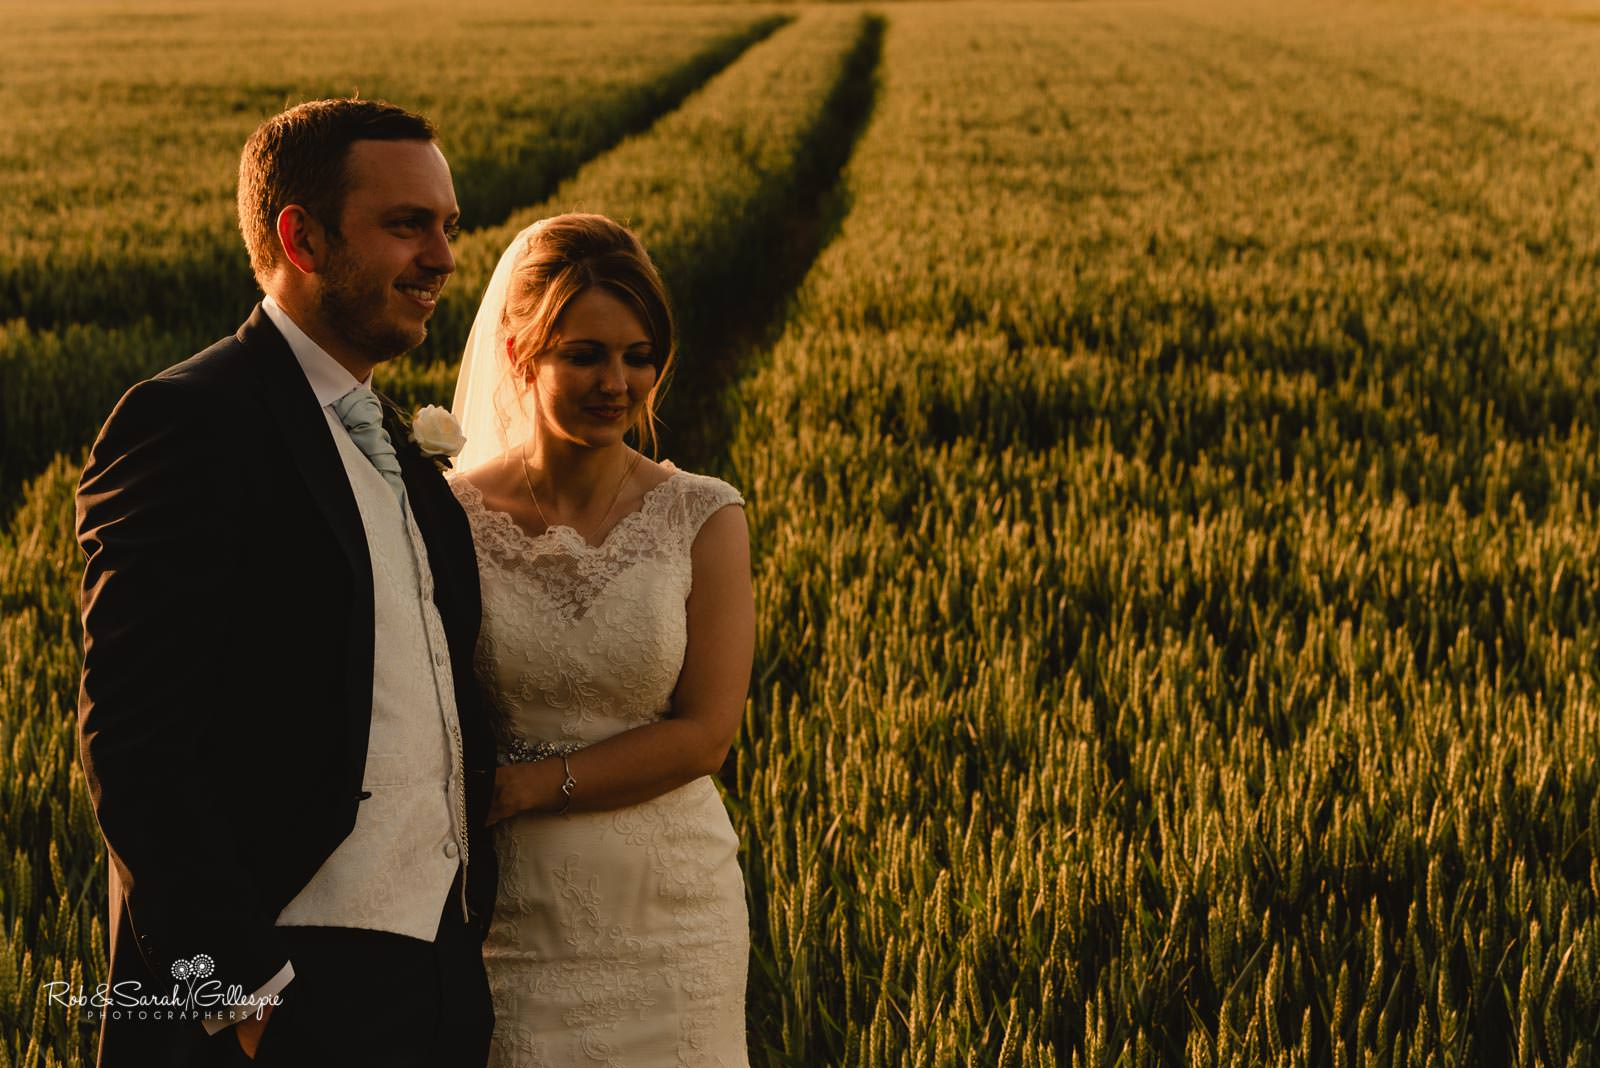 Natural and relaxed wedding photography at Swallows Nest Barn